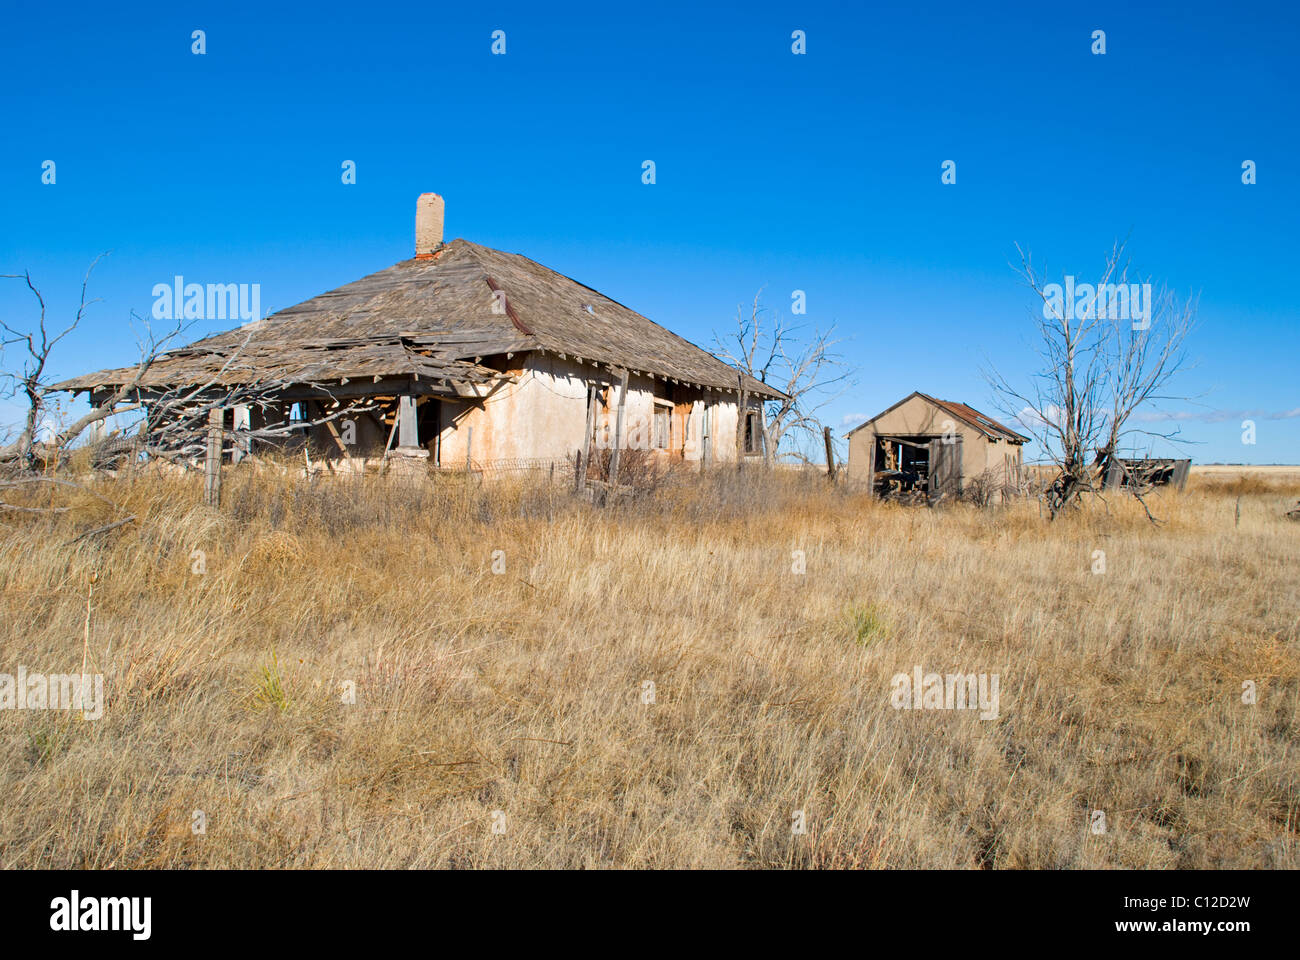 Wind and weather help destroy an abandoned house in a very rural area of New Mexico. - Stock Image